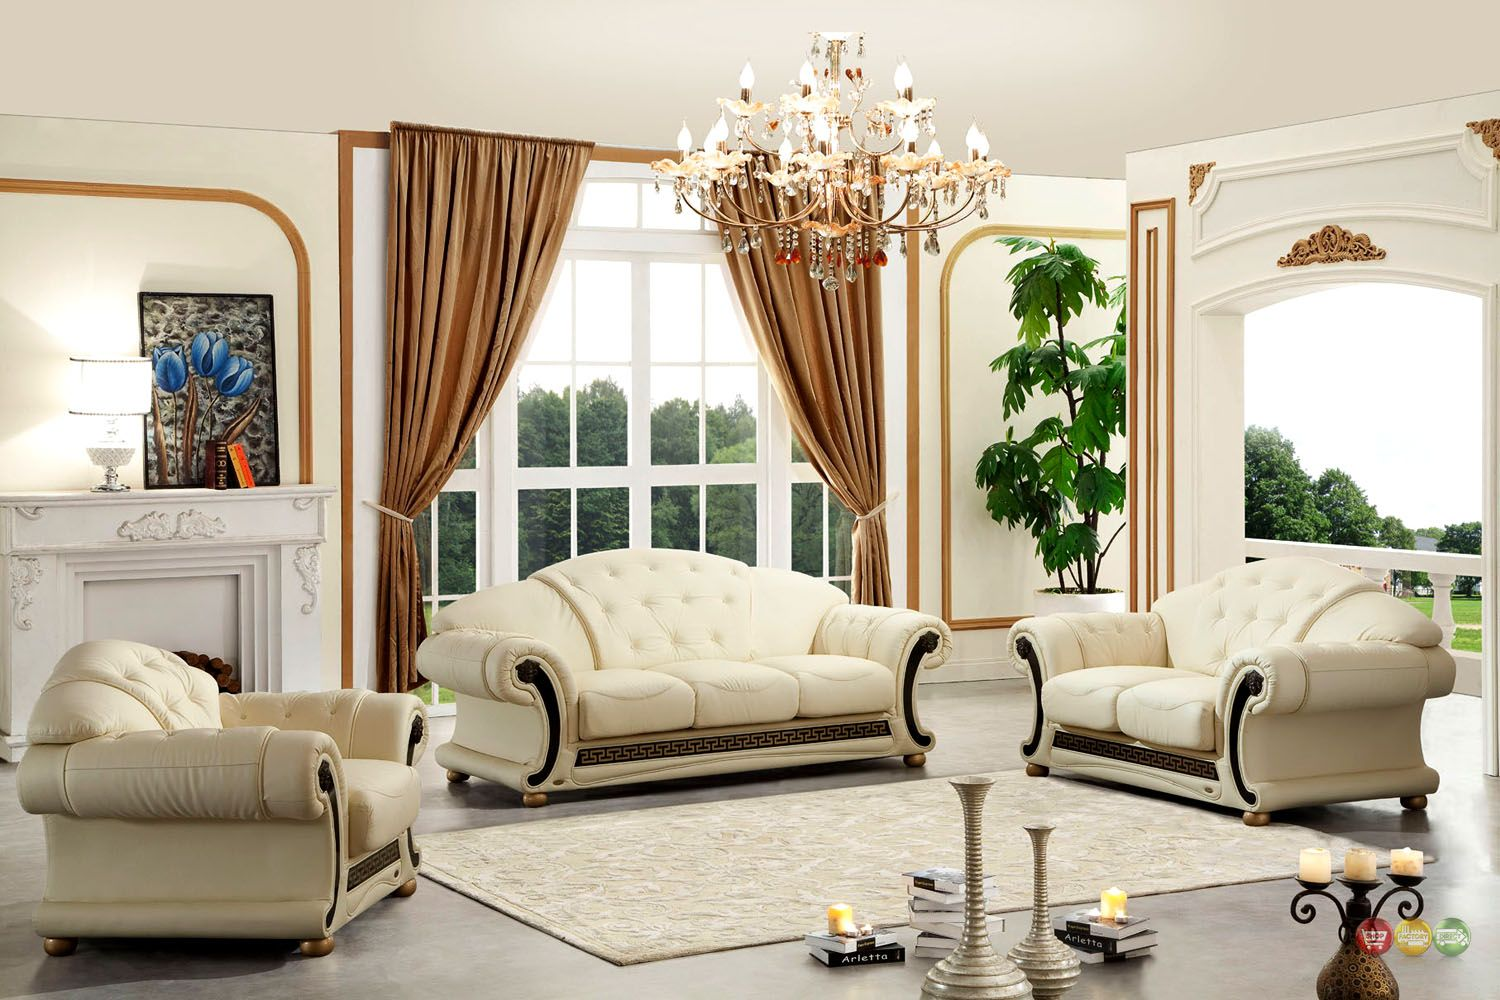 Attractive Versace Cleopatra Cream Italian Top Grain Leather Beige Living Room Sofa Set Part 30